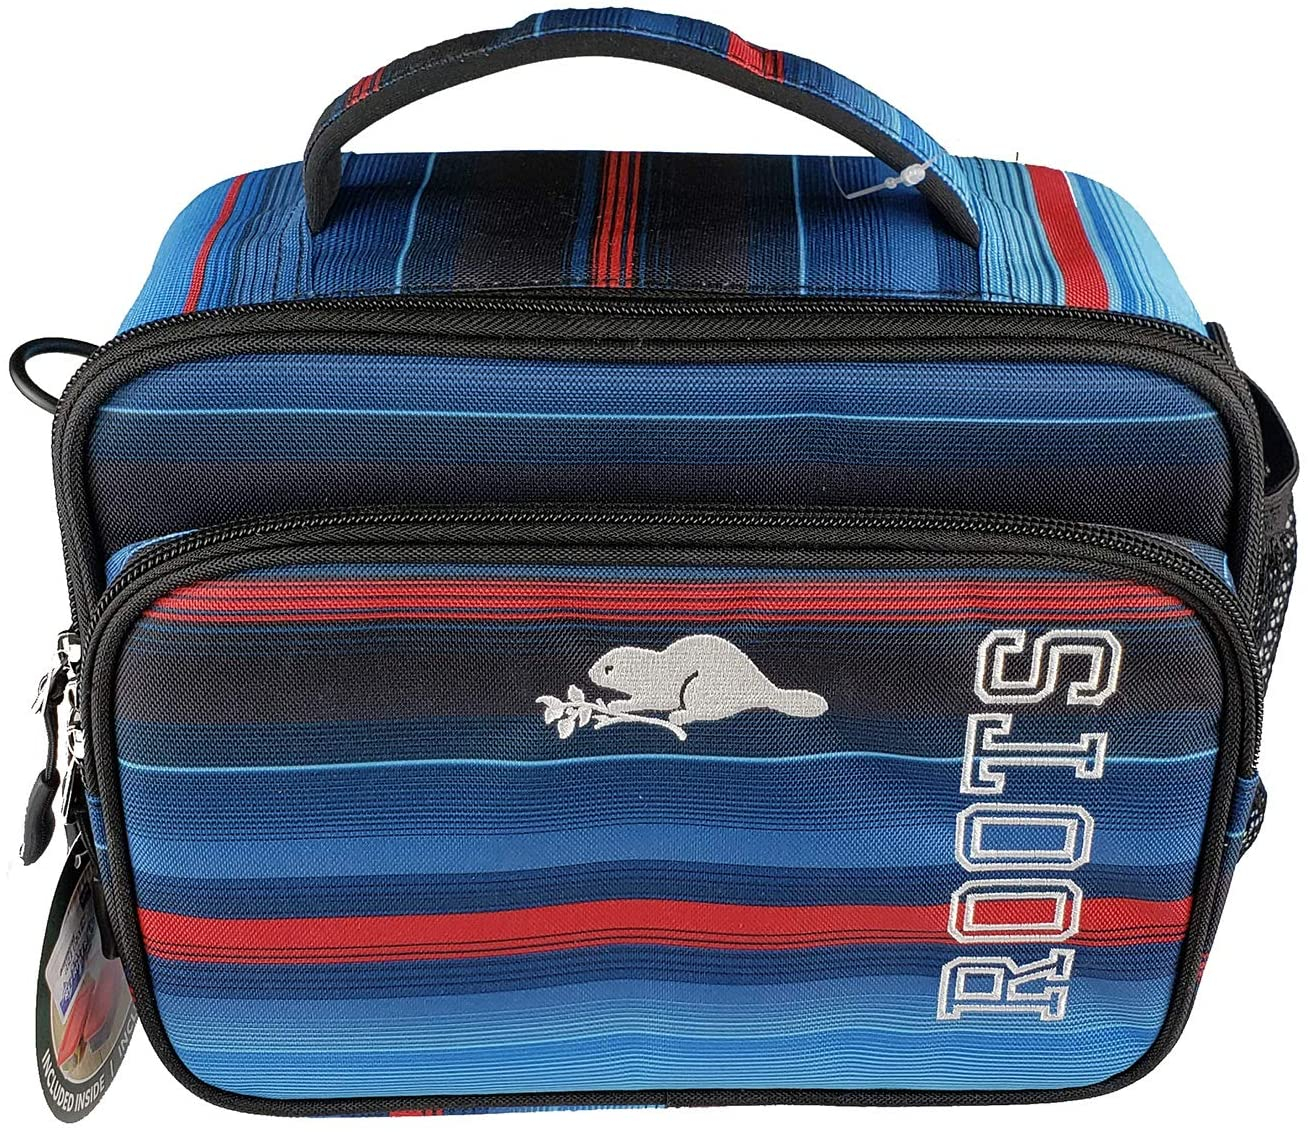 Roots Blue-Red Deluxe Insulated Lunch Box Bag 5 Piece Set